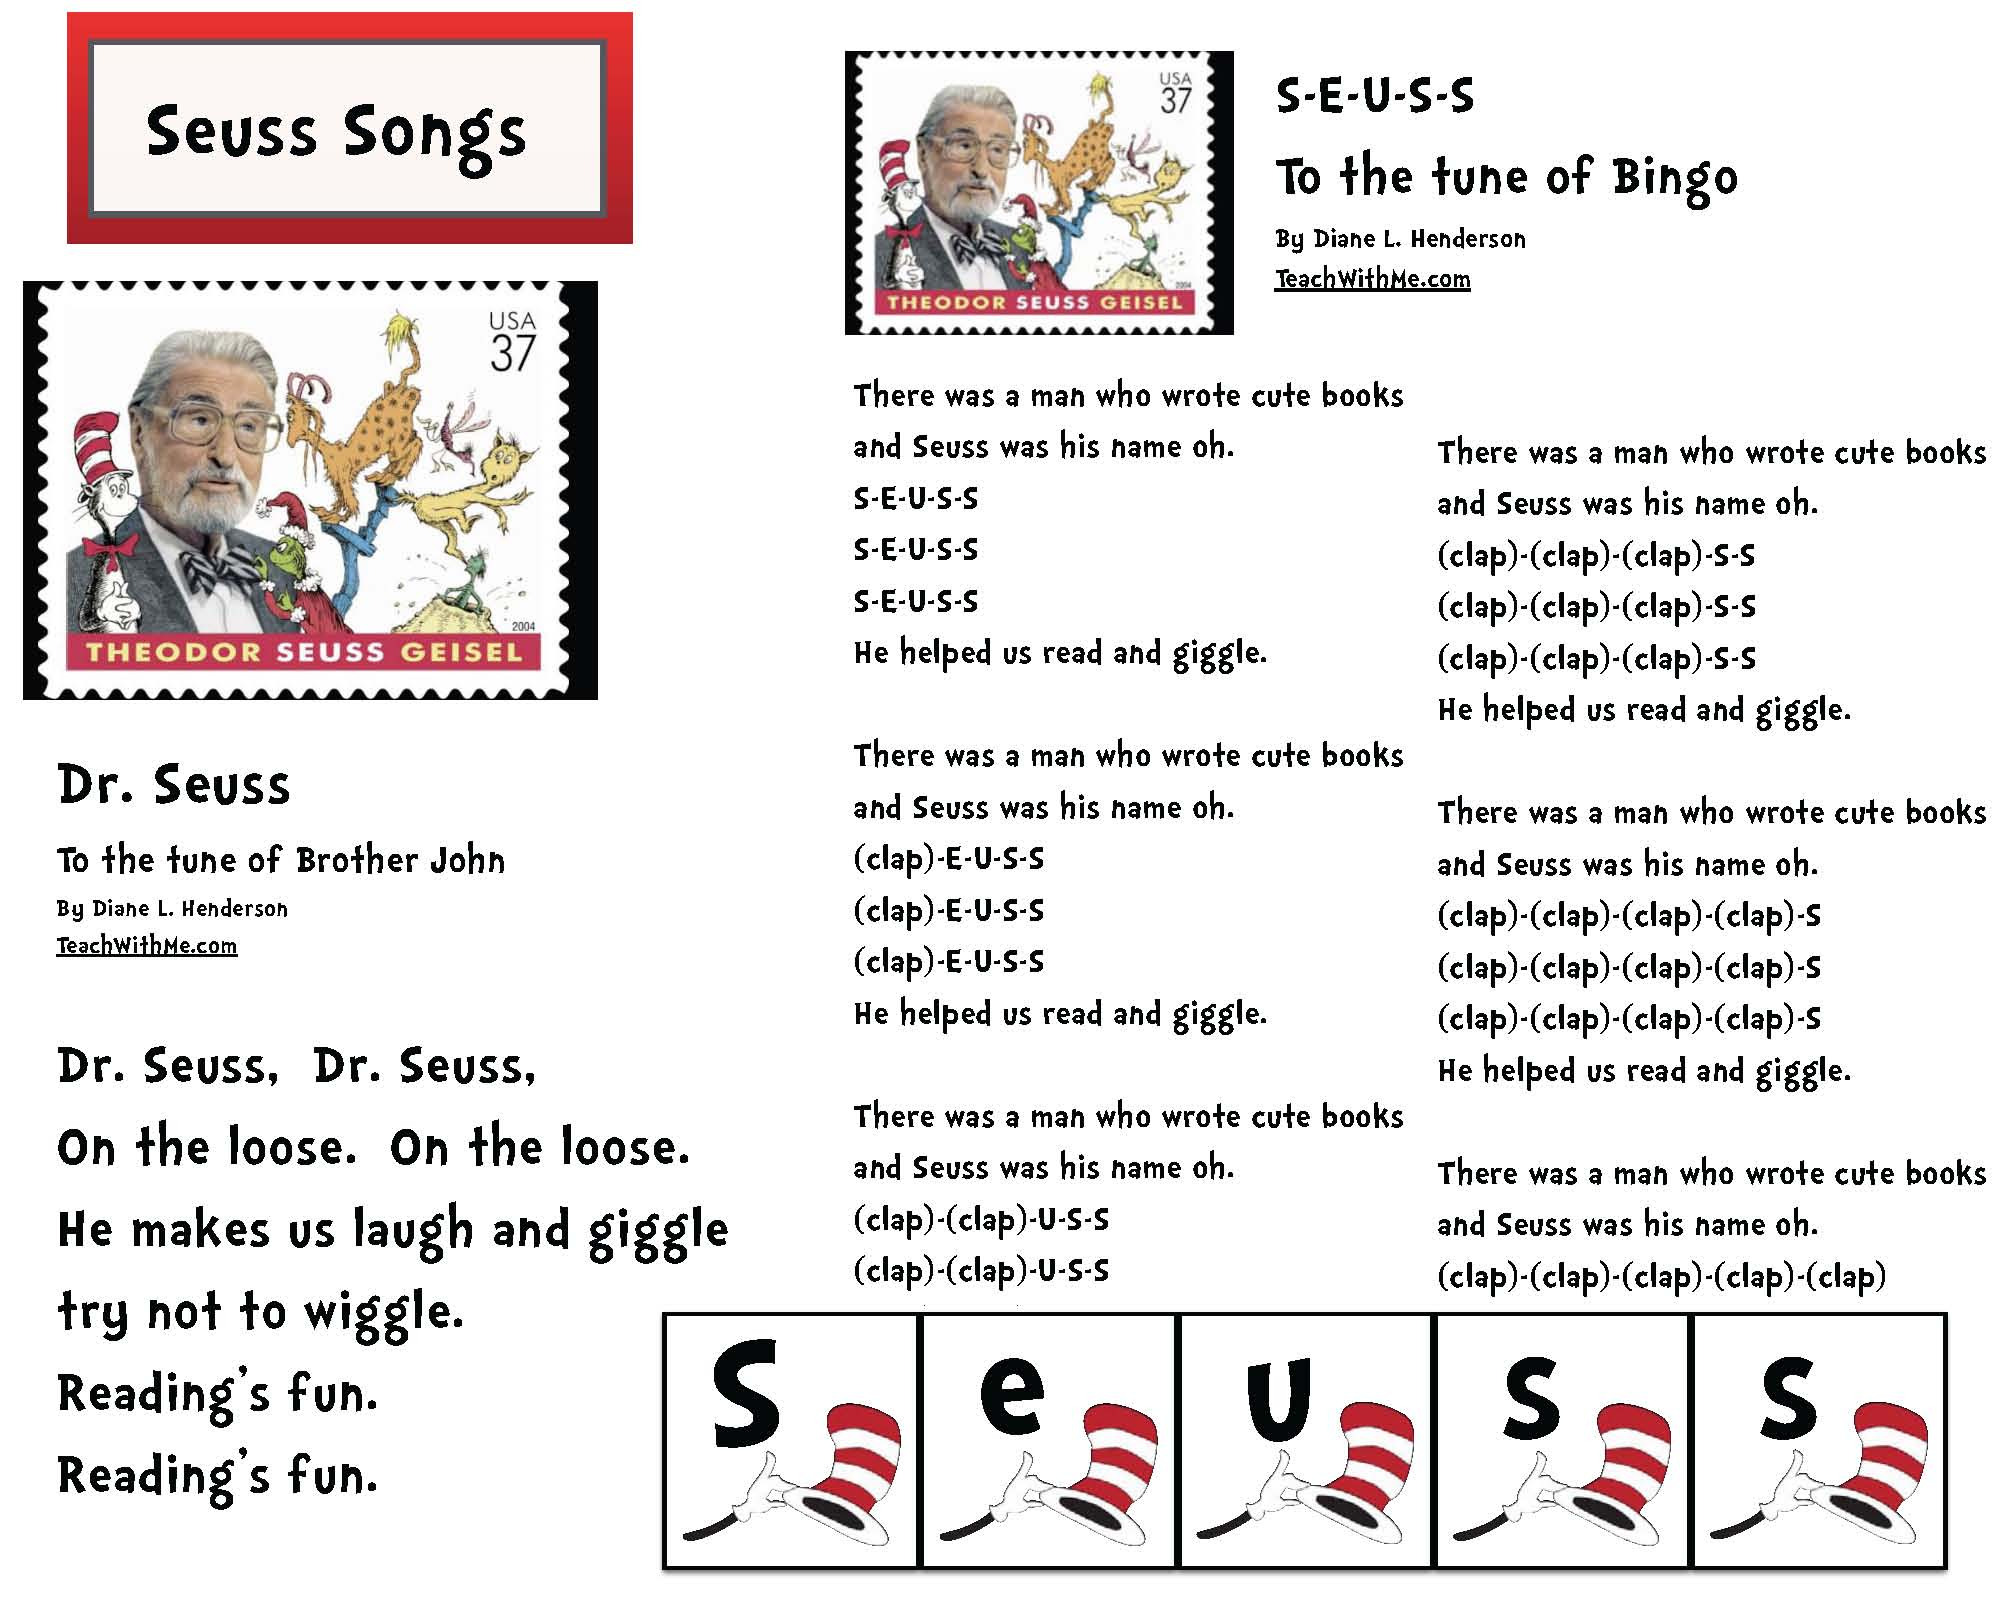 seuss songs, seuss games, seuss writing prompts, seuss class made books, seuss alphabet book, seuss alphabet cards, writing prompts for march, march writing prompts, writing prompts for dr seuss, dr seuss activities, common core seuss